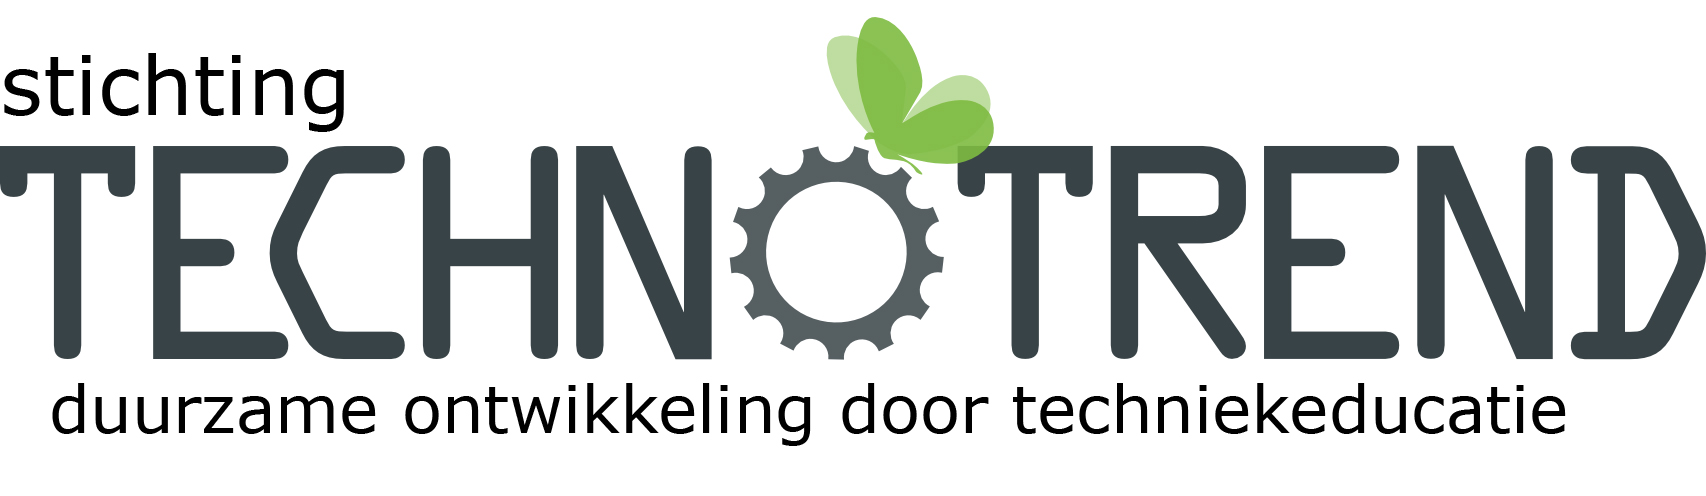 Logo-Stichting Technotrend